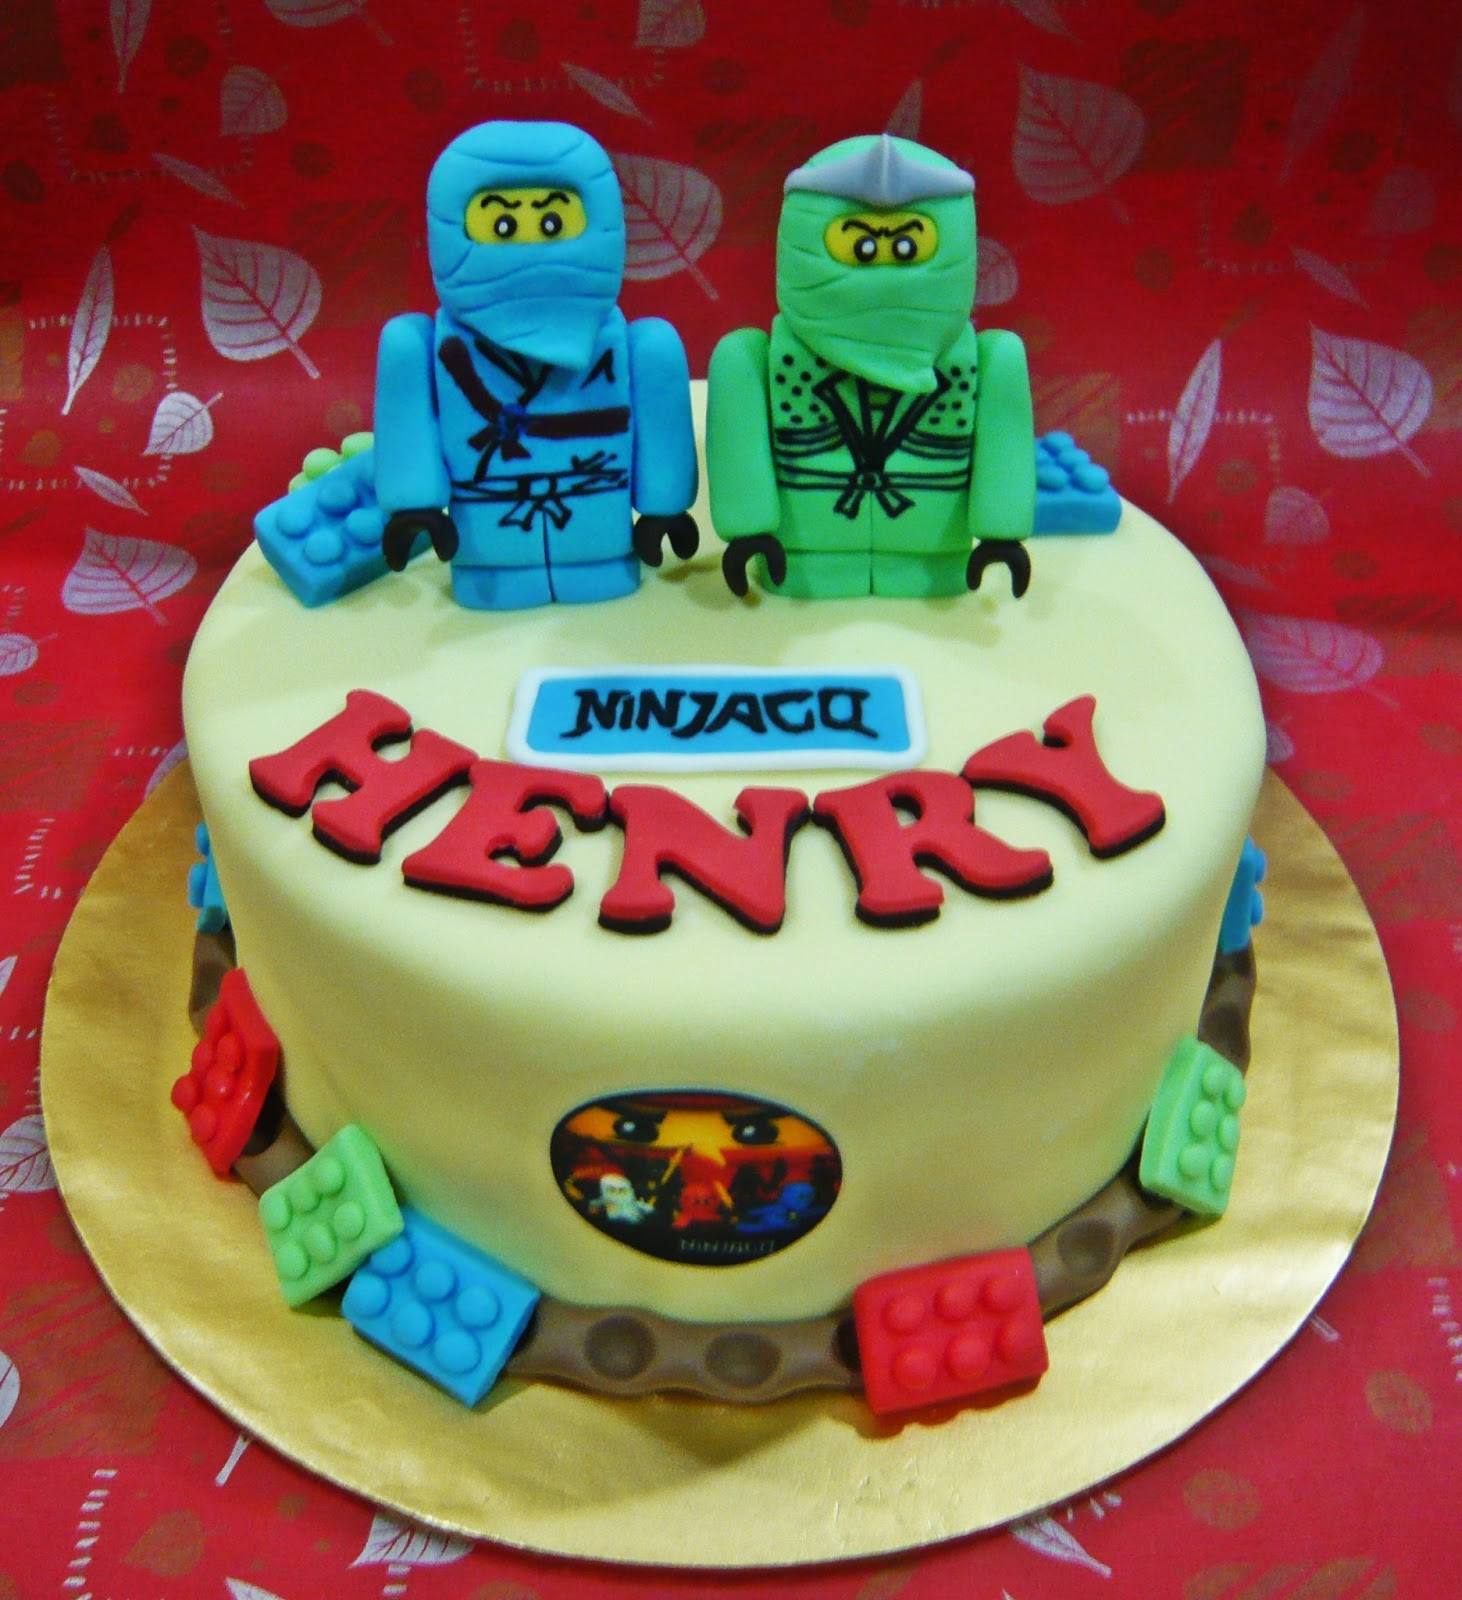 Marvelous Ninjago Cakes Decoration Ideas Little Birthday Cakes Funny Birthday Cards Online Inifofree Goldxyz